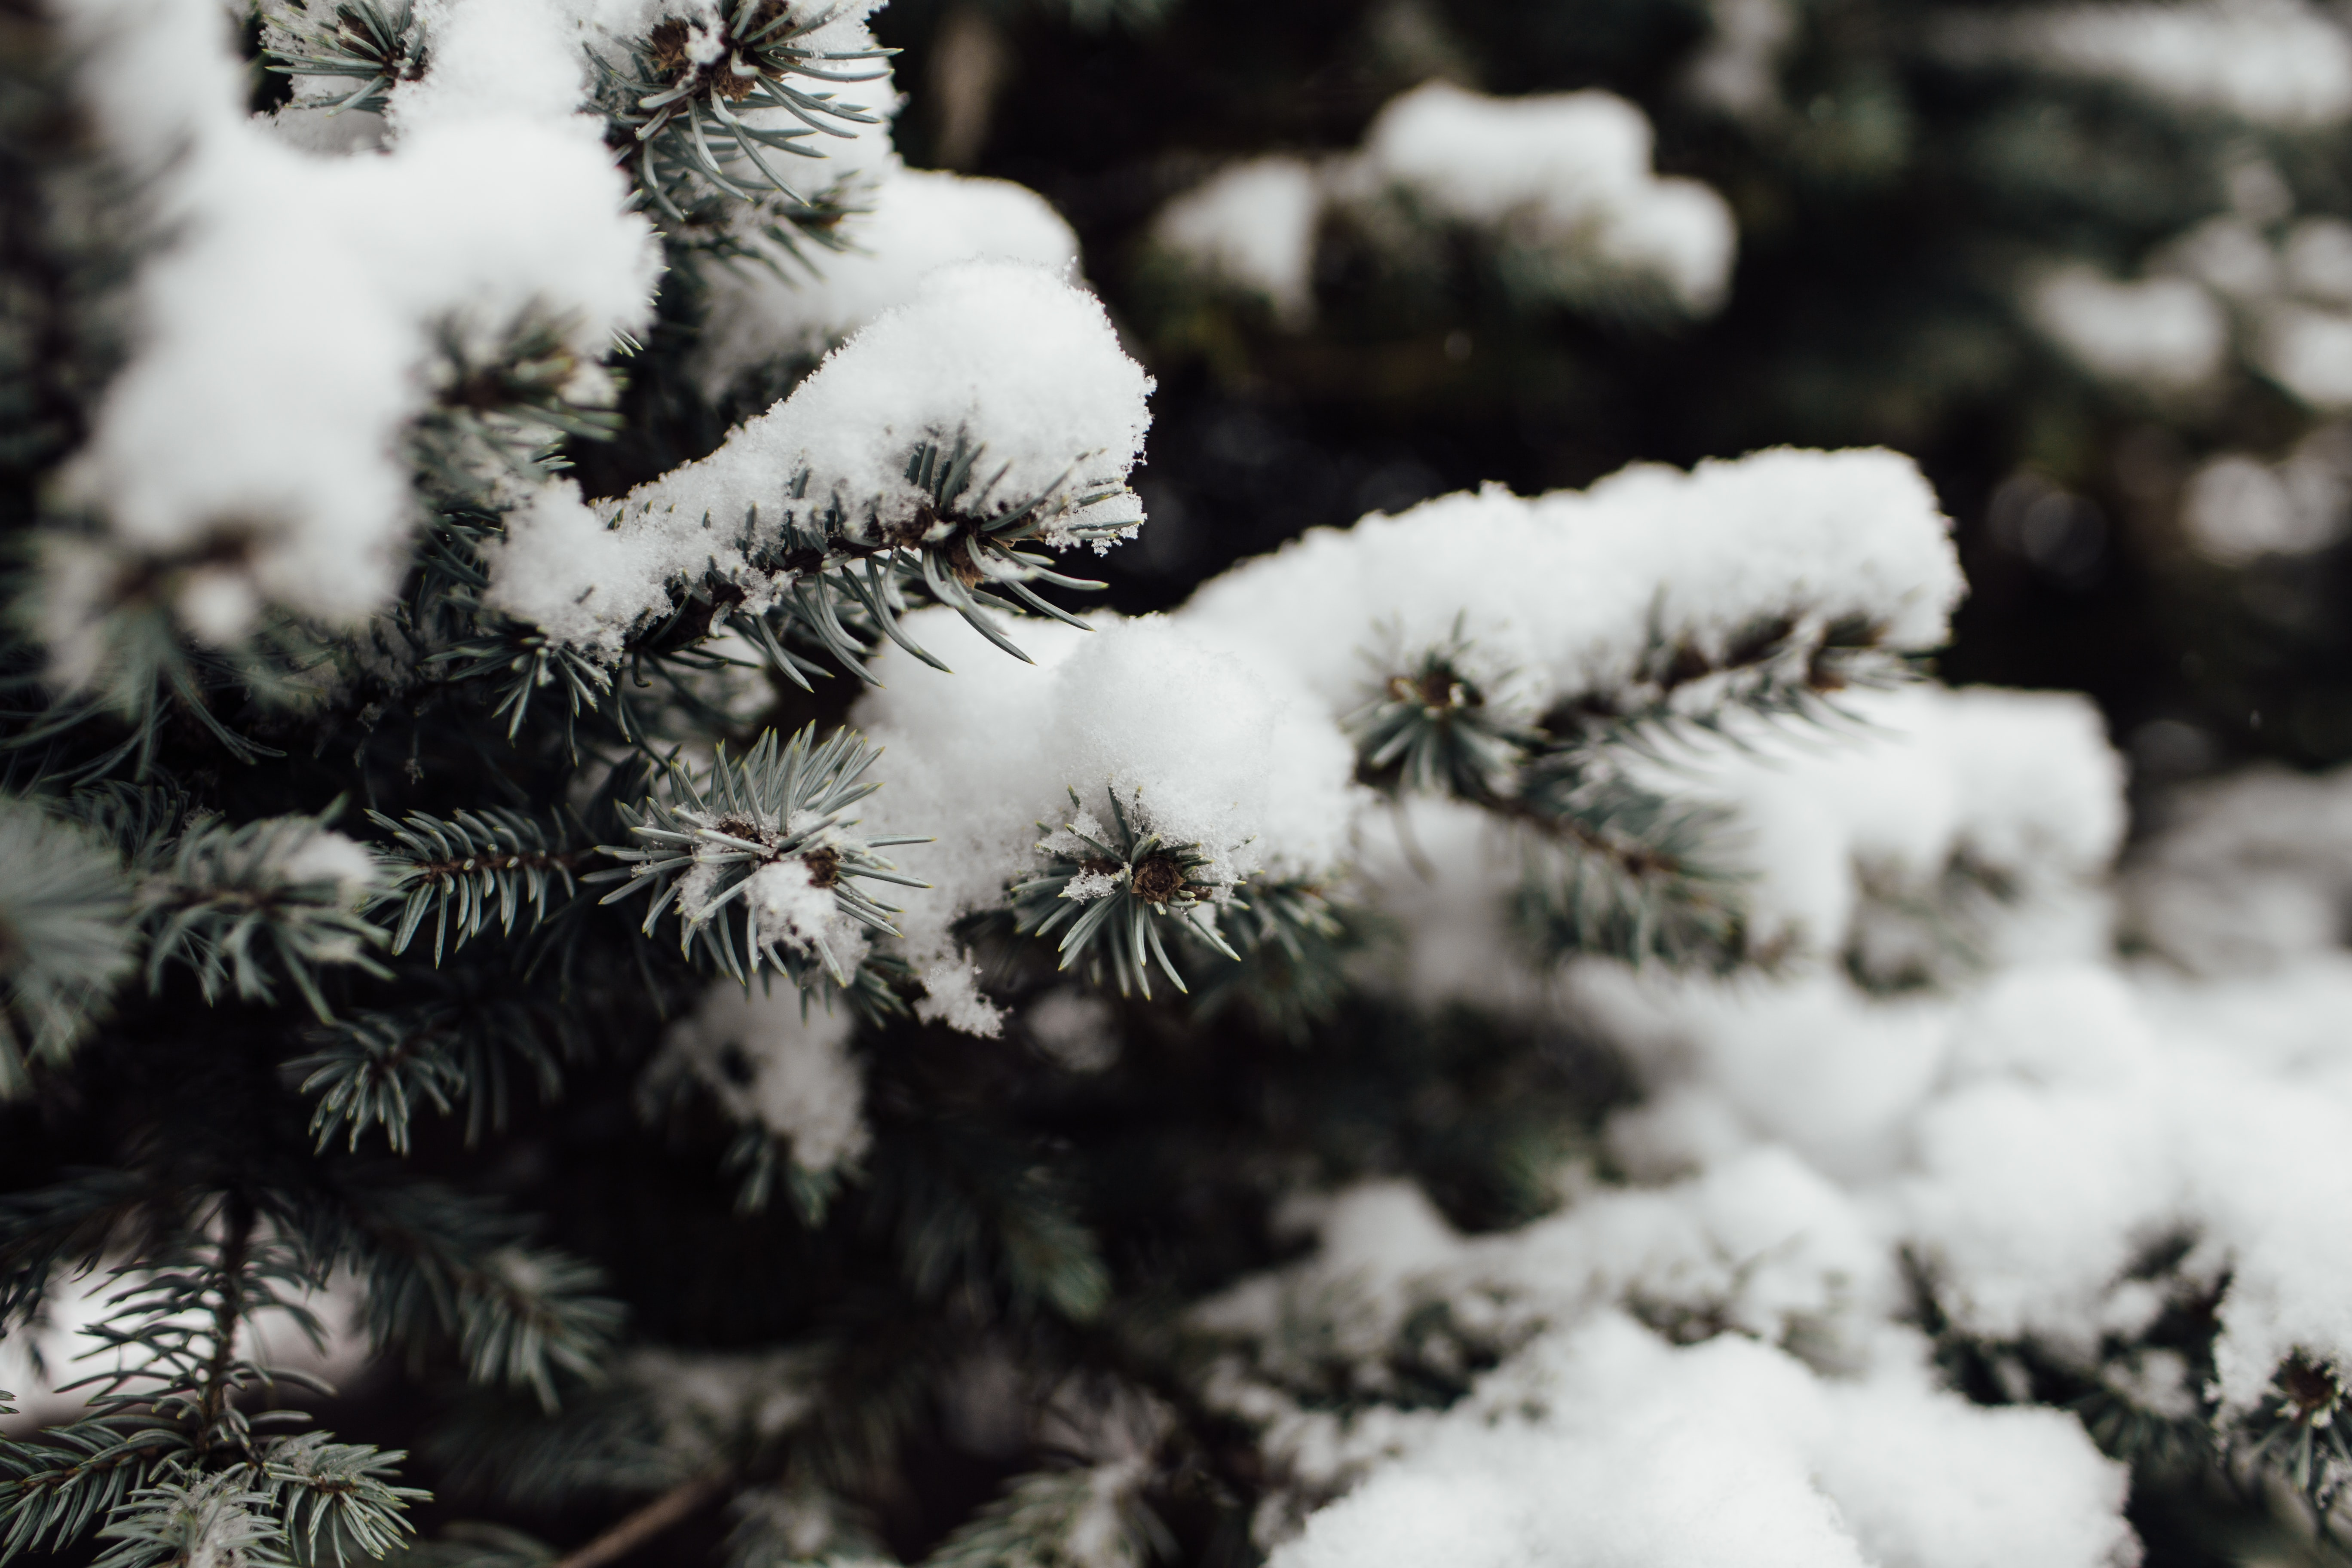 snow covered tree in macro photography